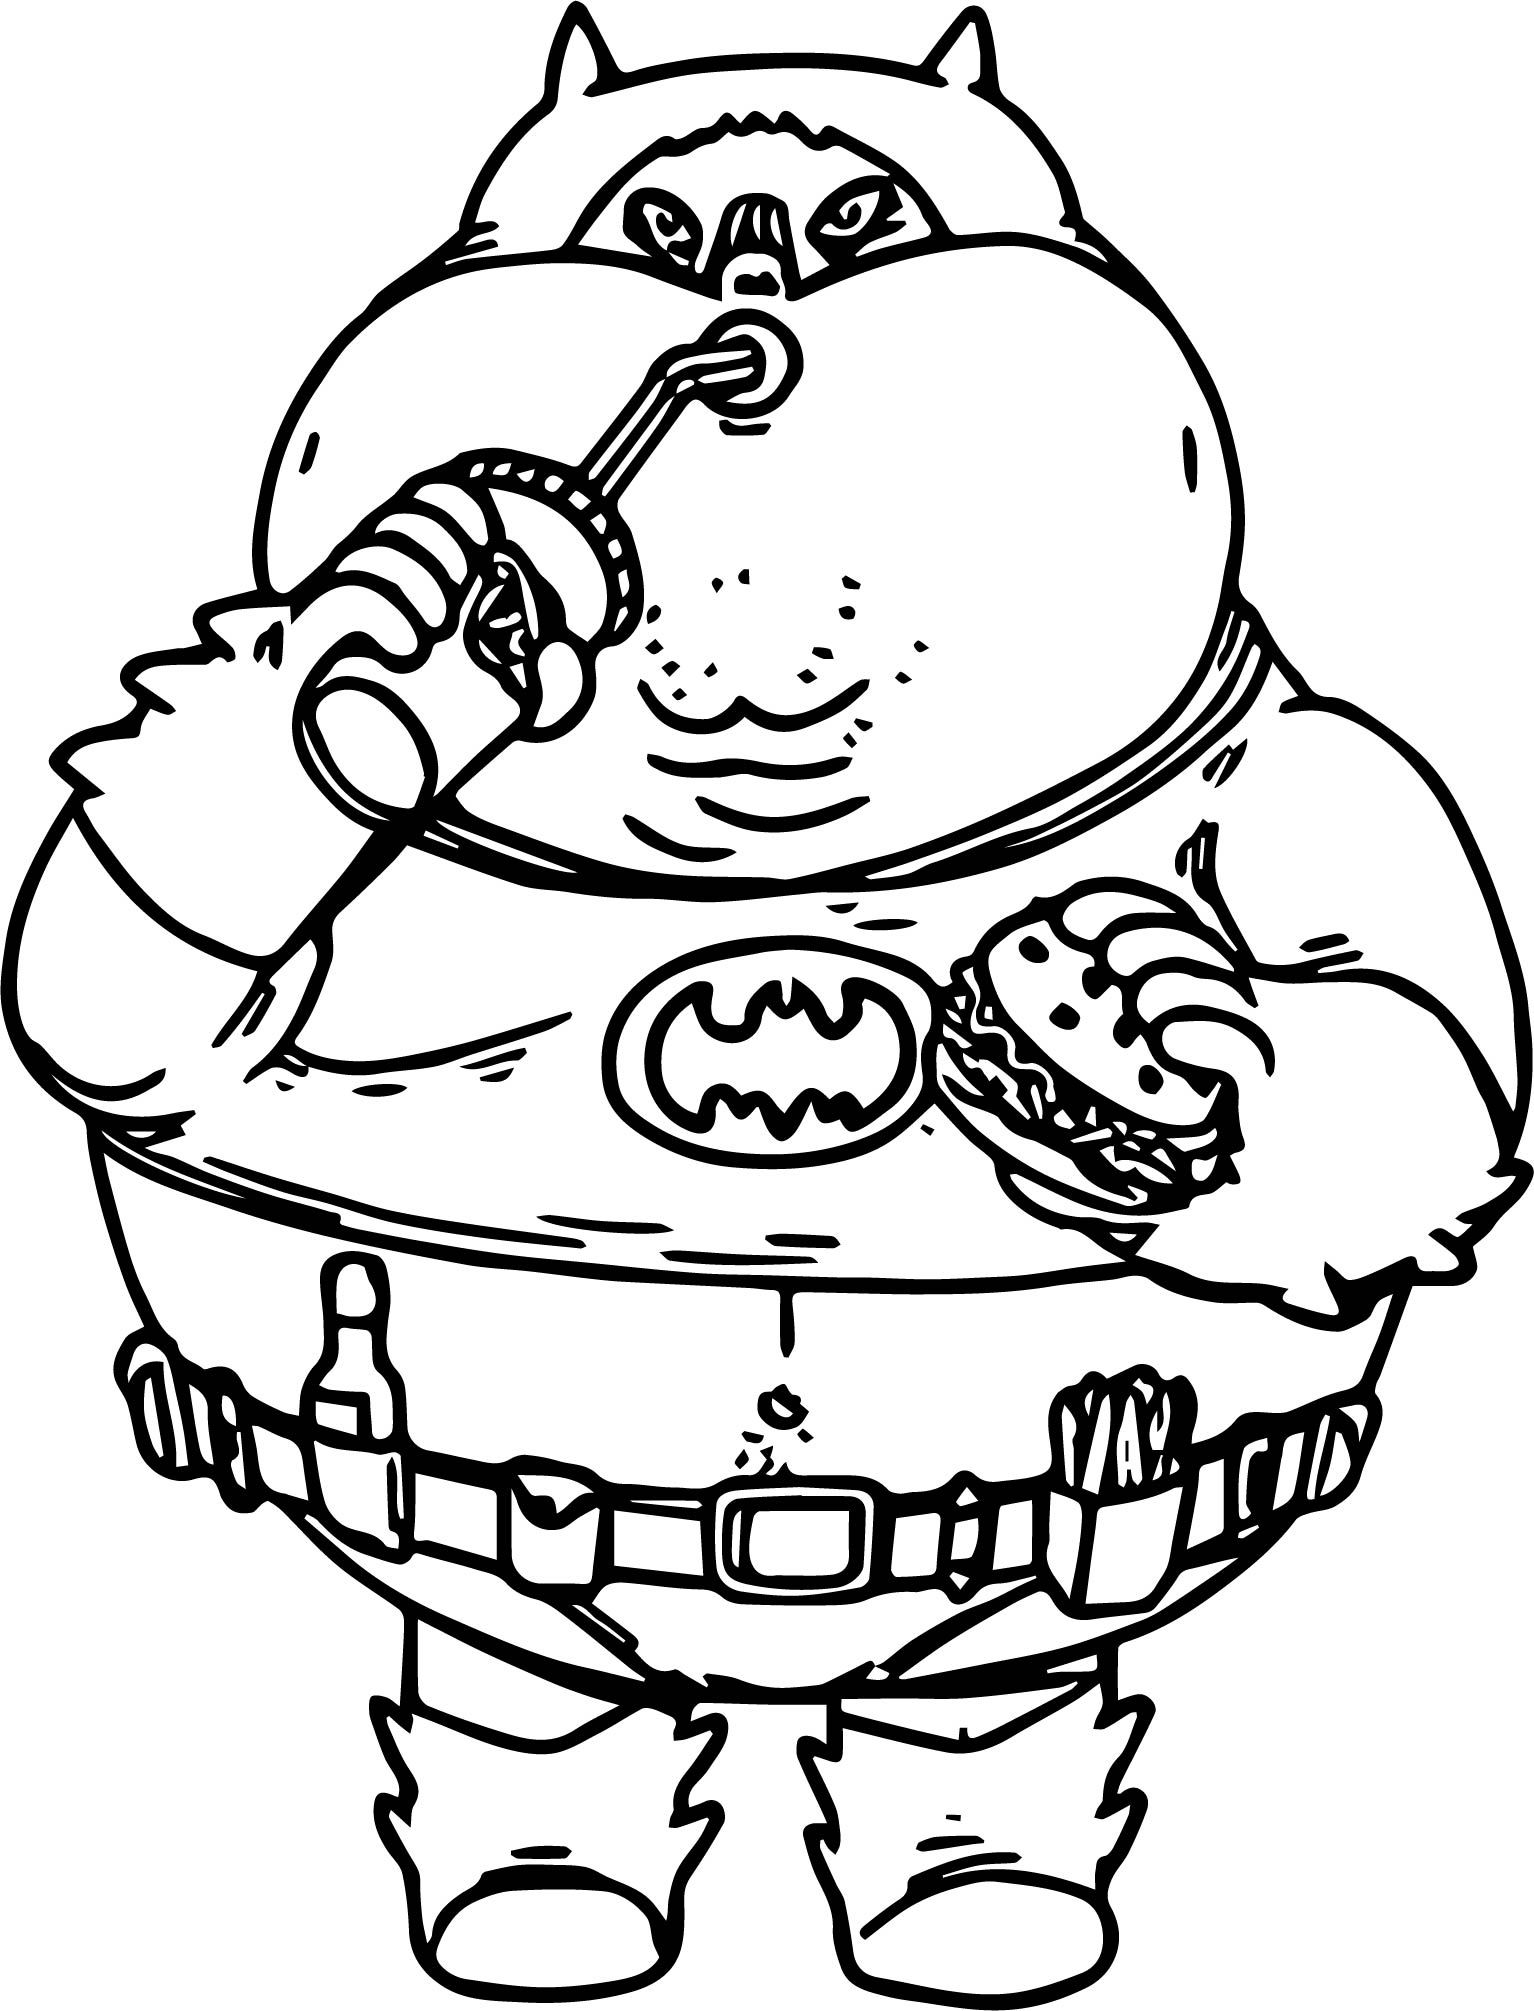 Batman Forever Two Face Coloring Pages - Coloring Pages Ideas